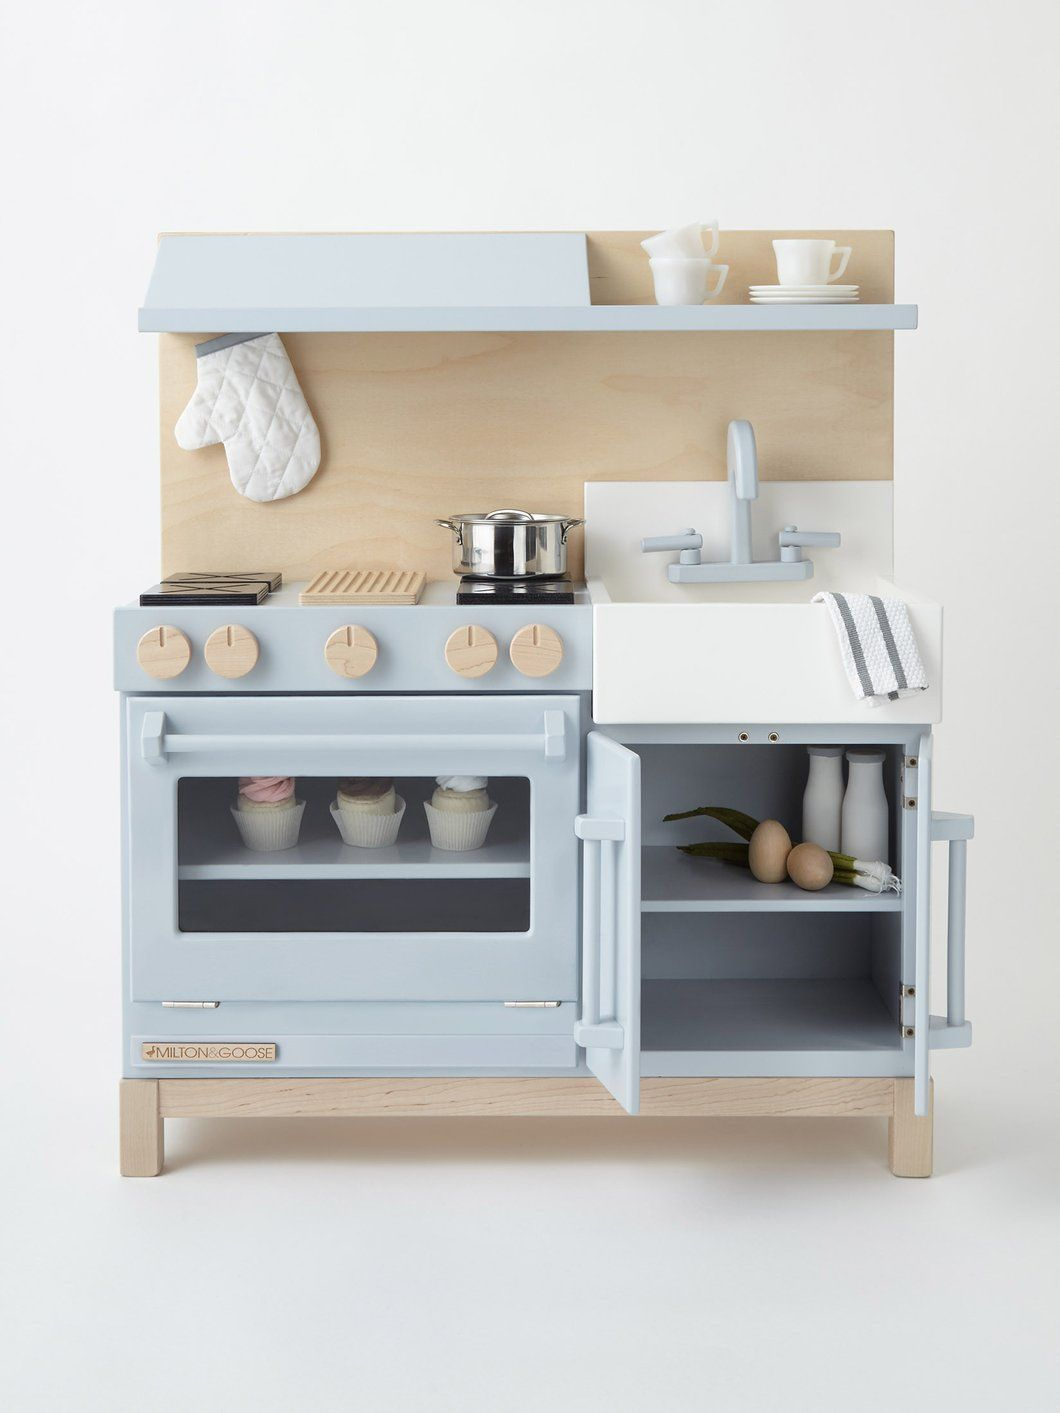 Classic Play Kitchen | Mini Me | Pinterest | Plays, Kitchens and Toy